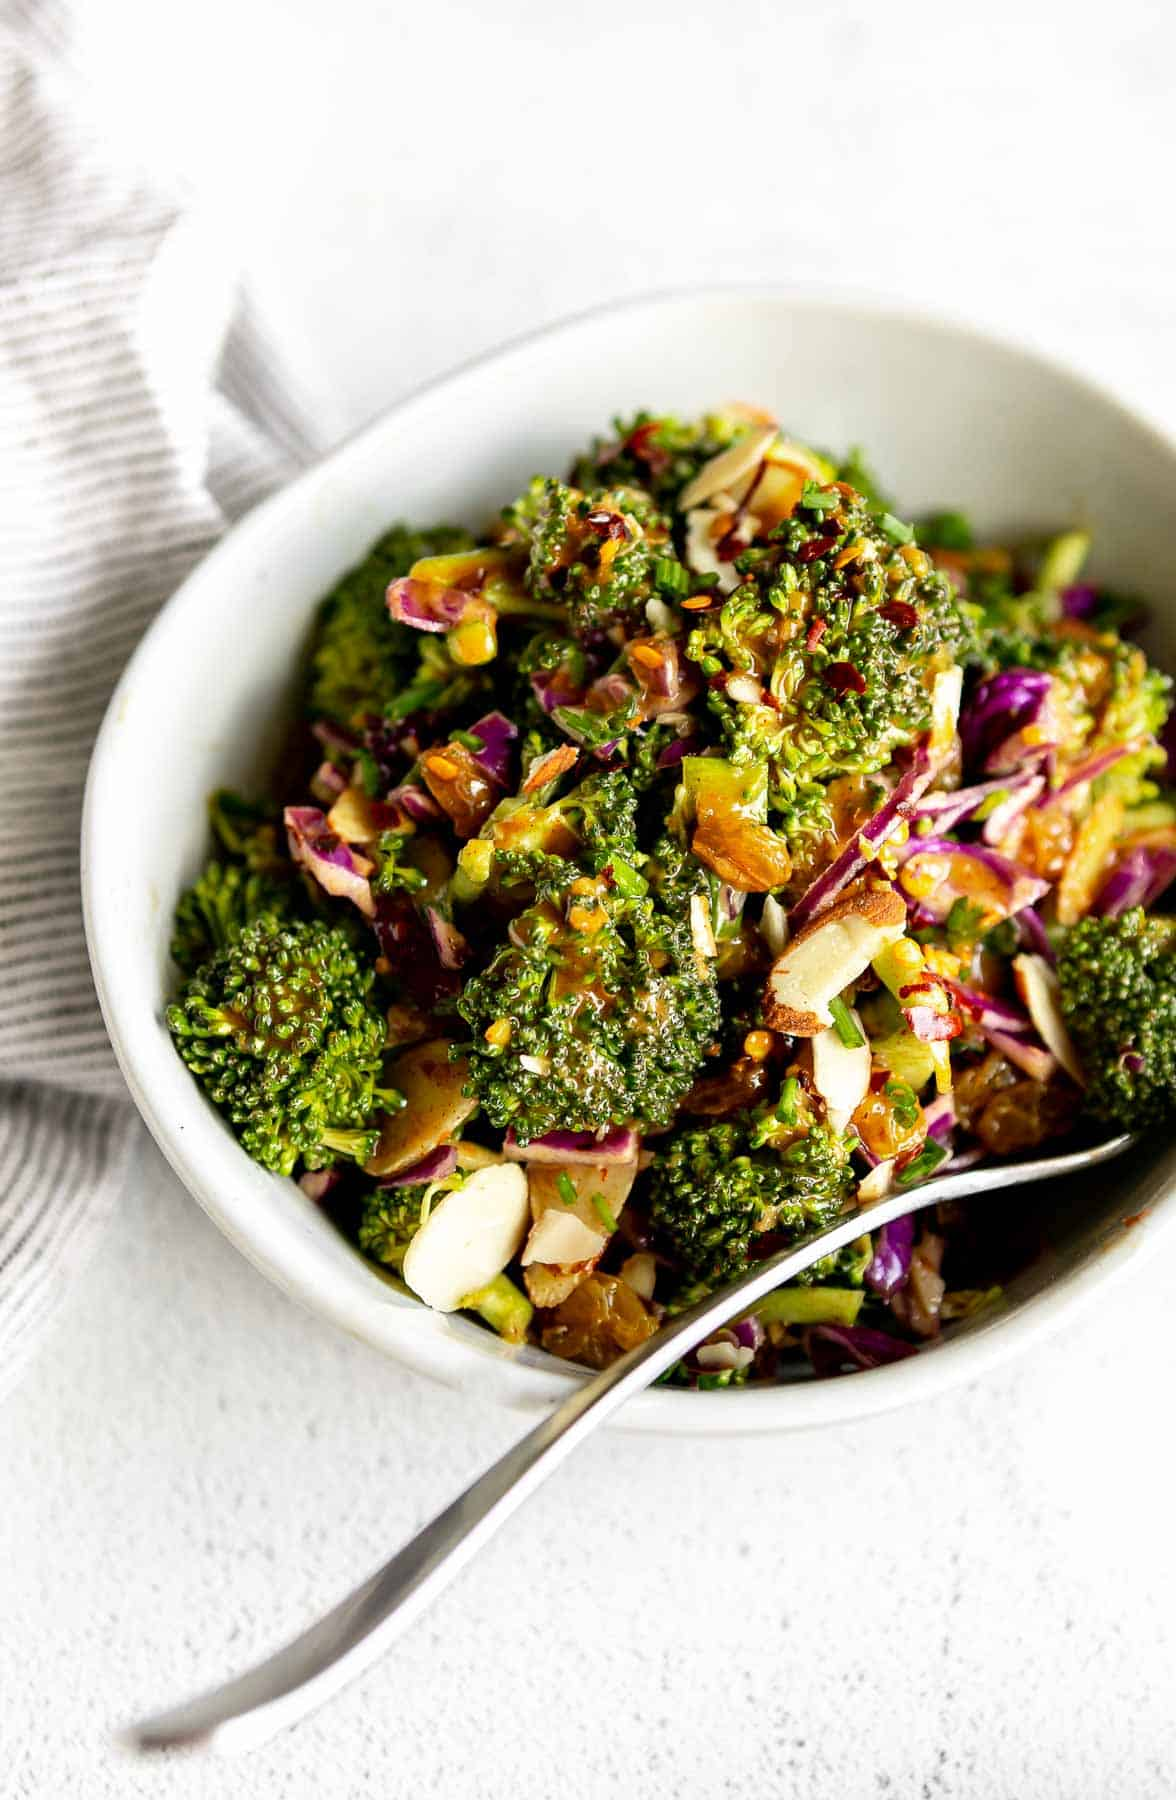 angled view of the broccoli salad with sliced almonds